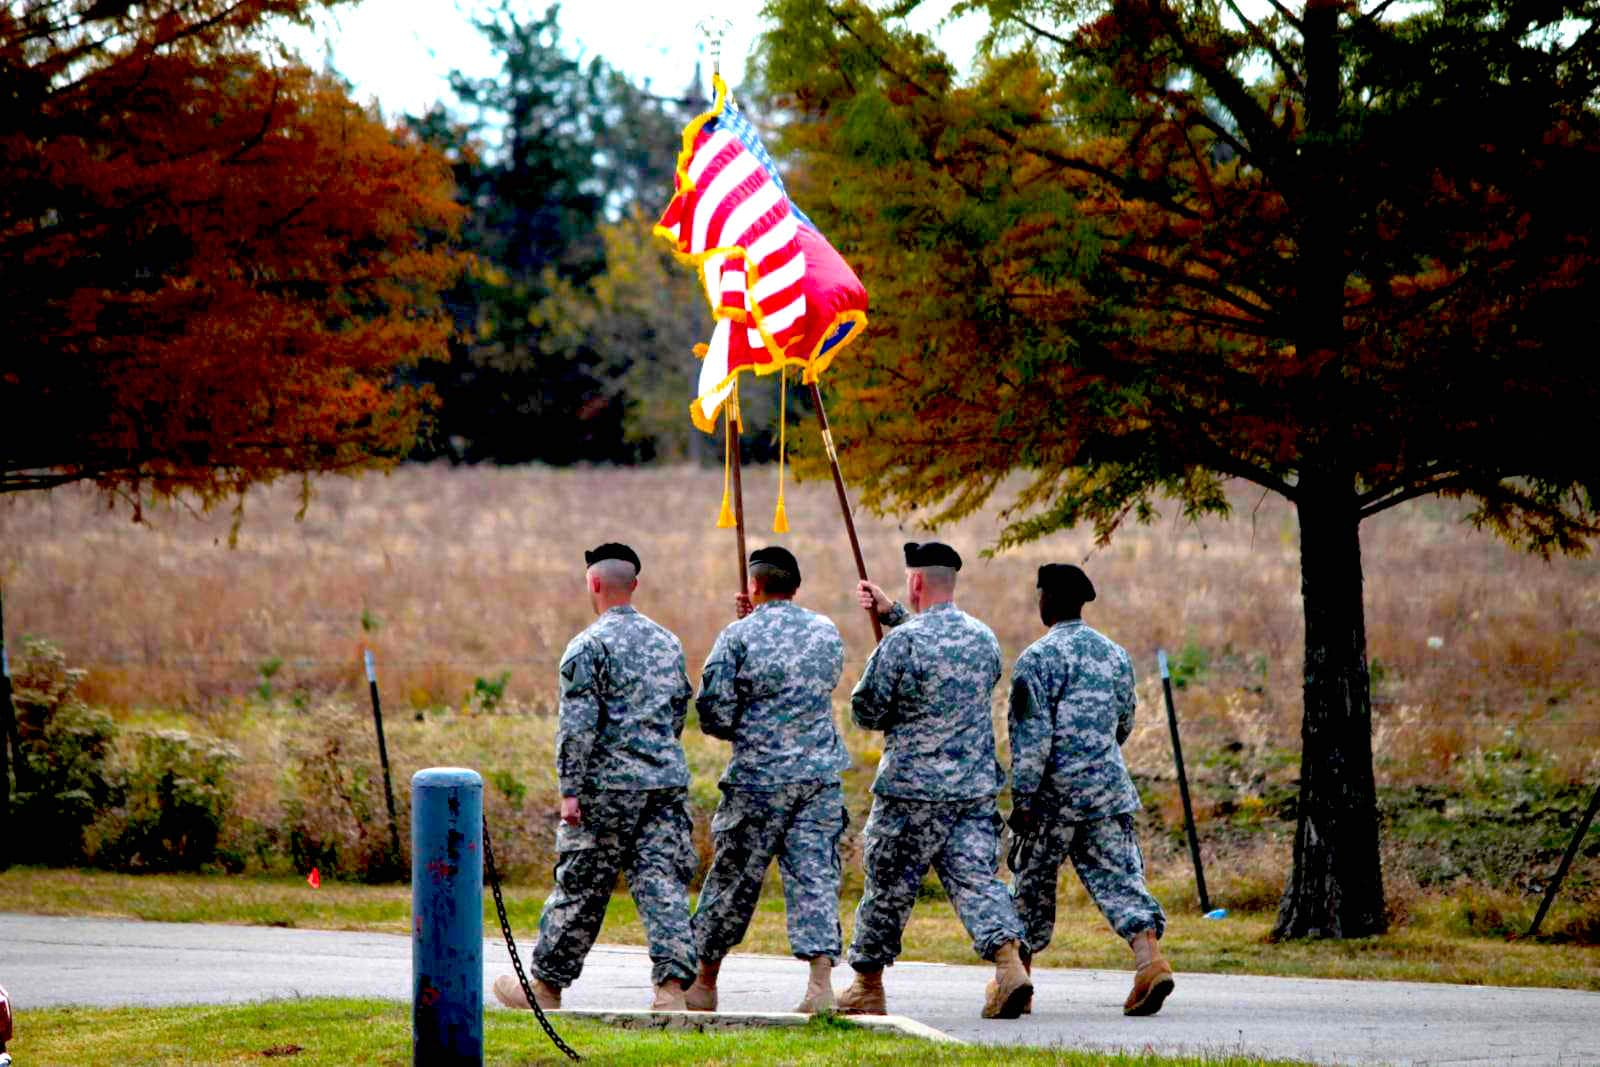 elder care attorneys - four people in uniform walking holding the American flag